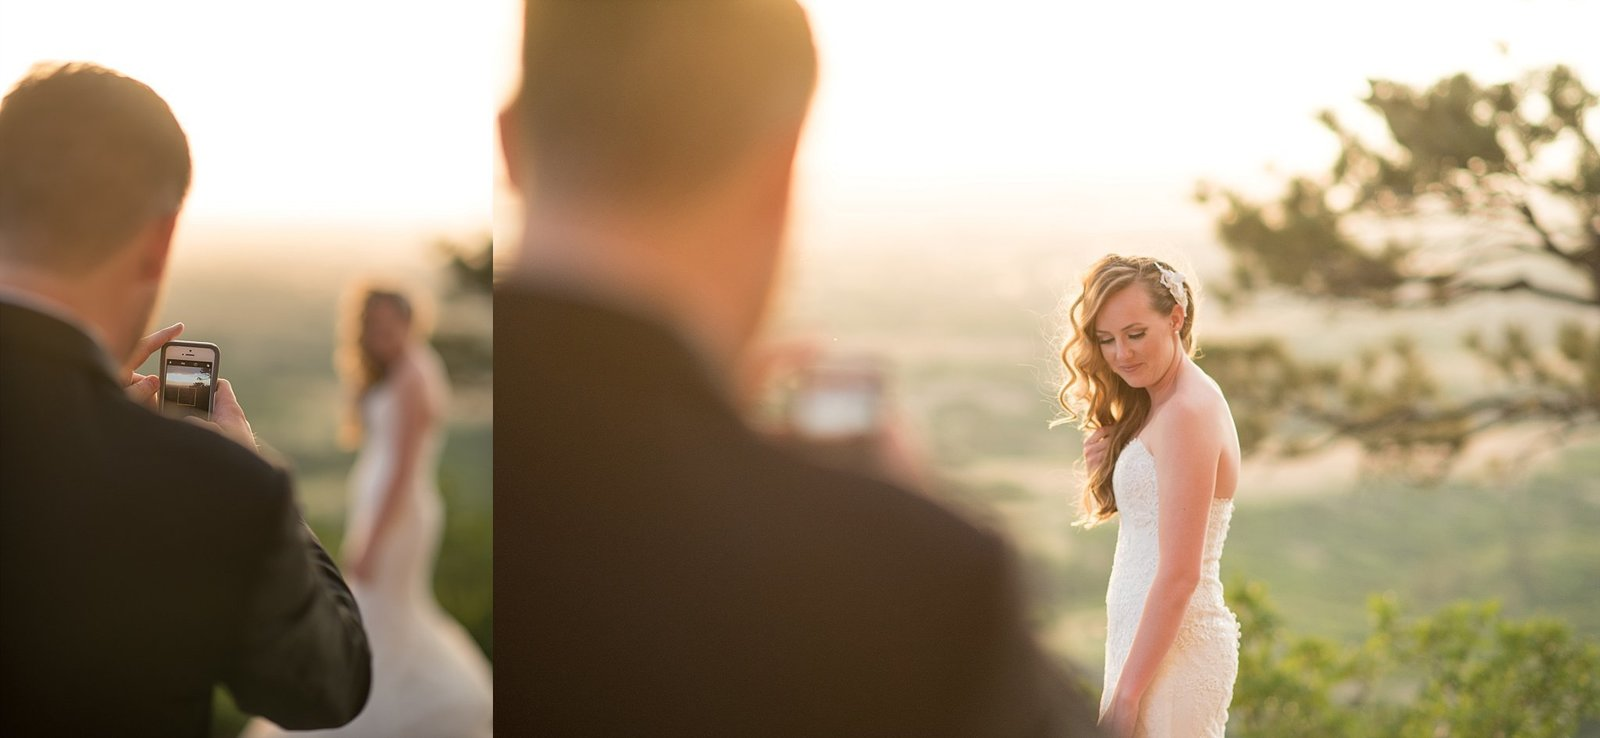 Elizabeth Ann Photography, Denver Wedding Photographer_2638